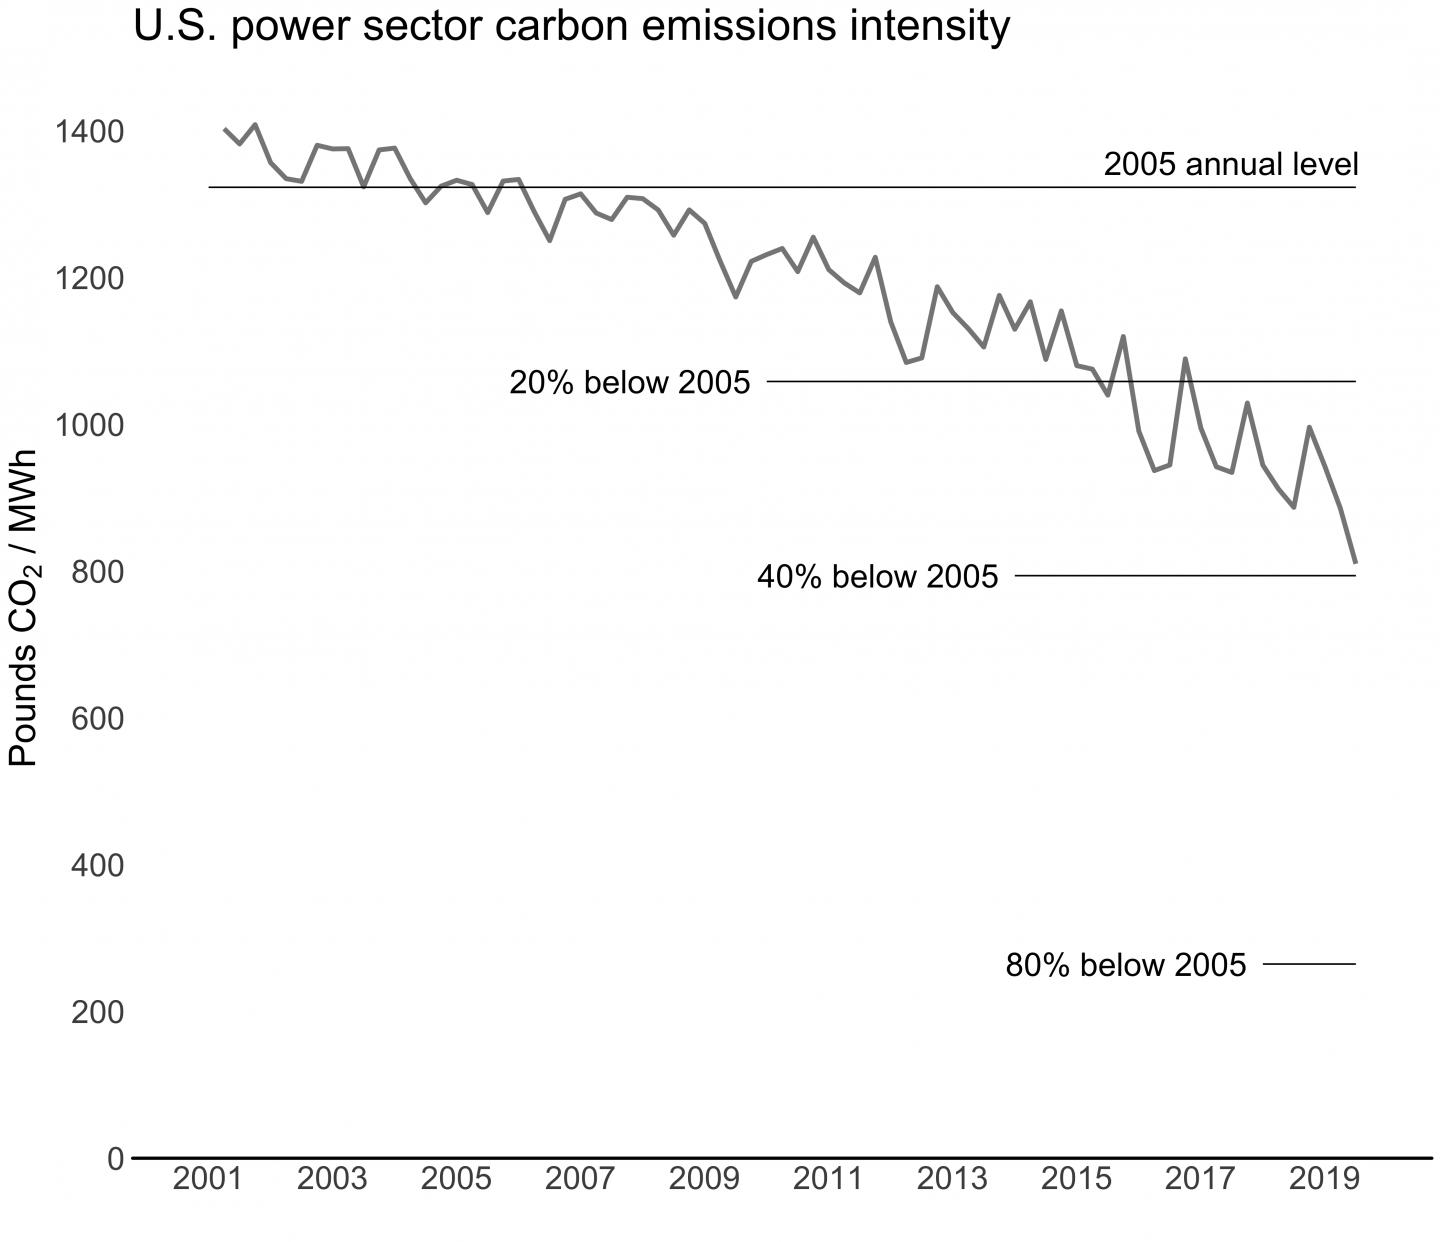 US Power Sector Carbon Emissions Intensity